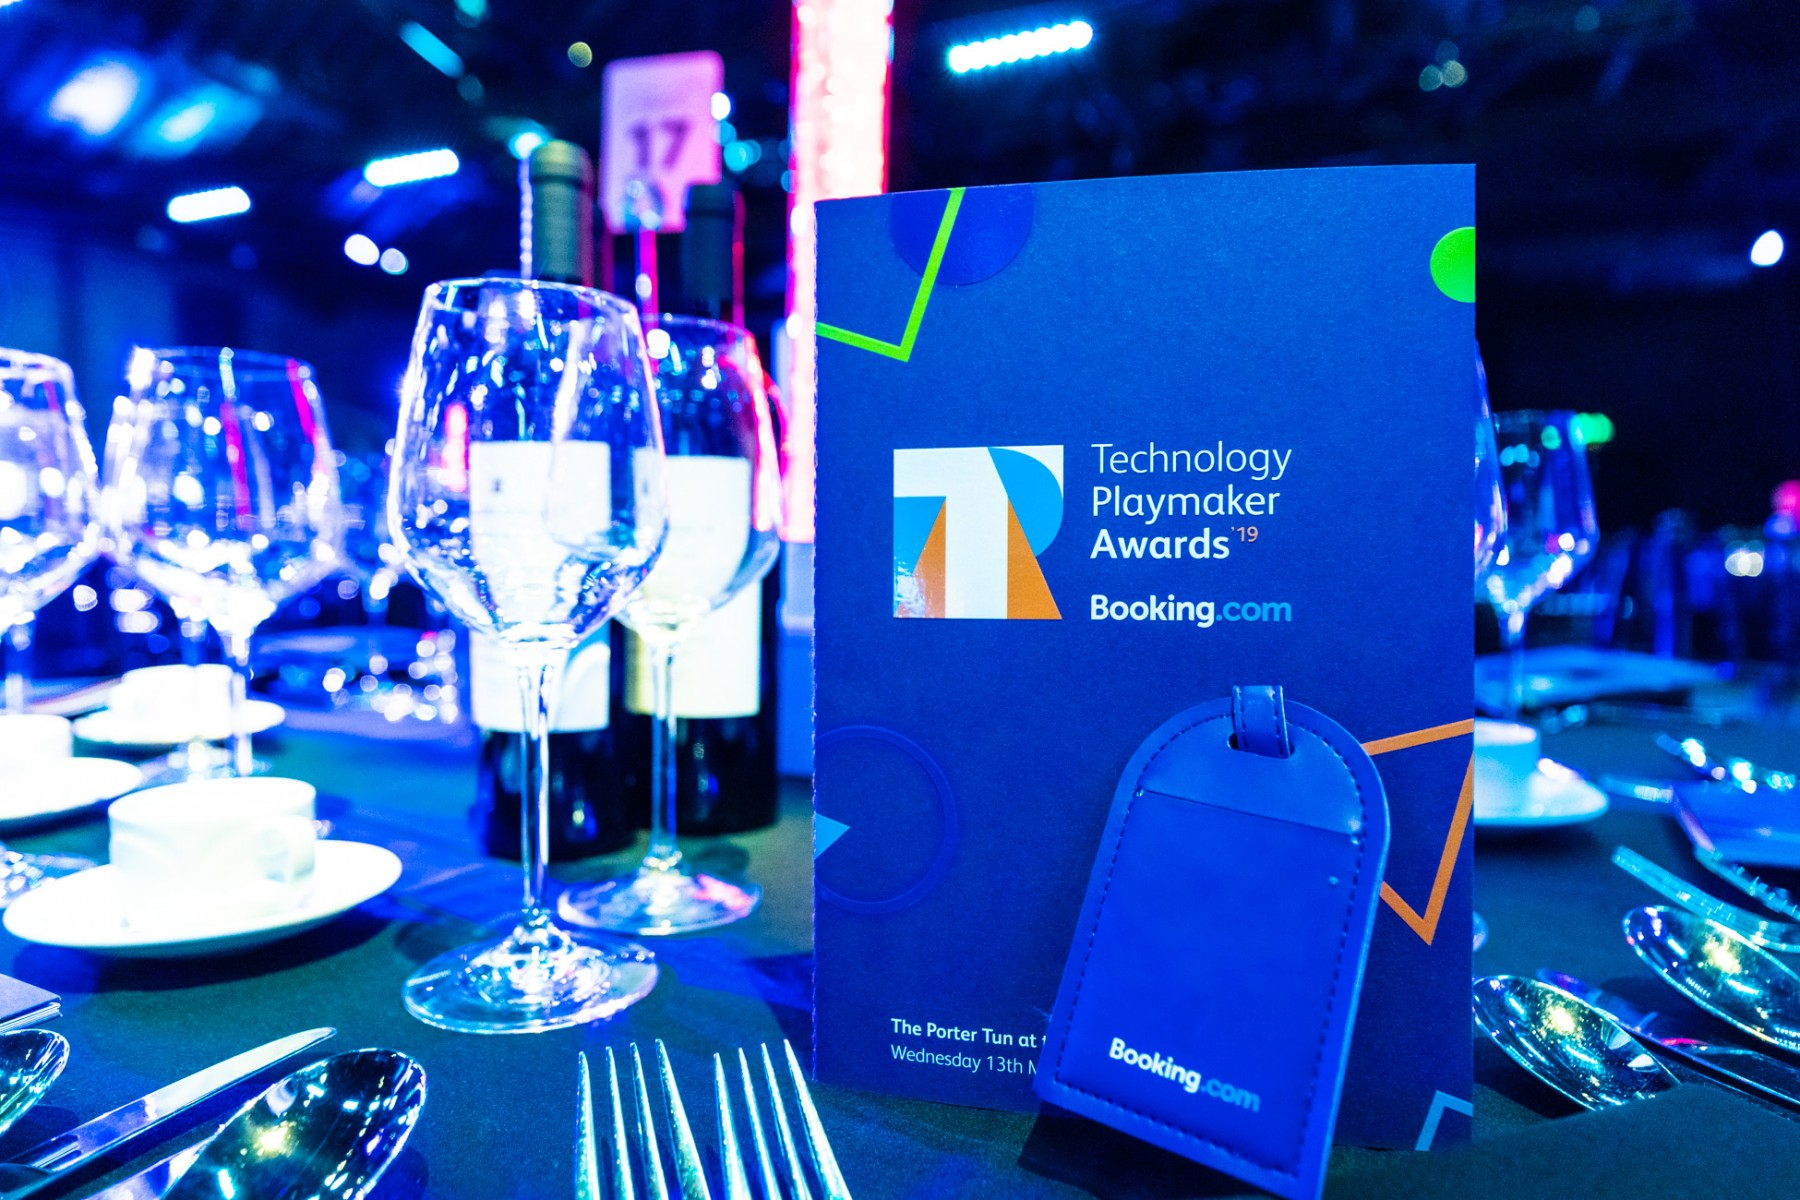 Booking Tech Playmaker19 Awards